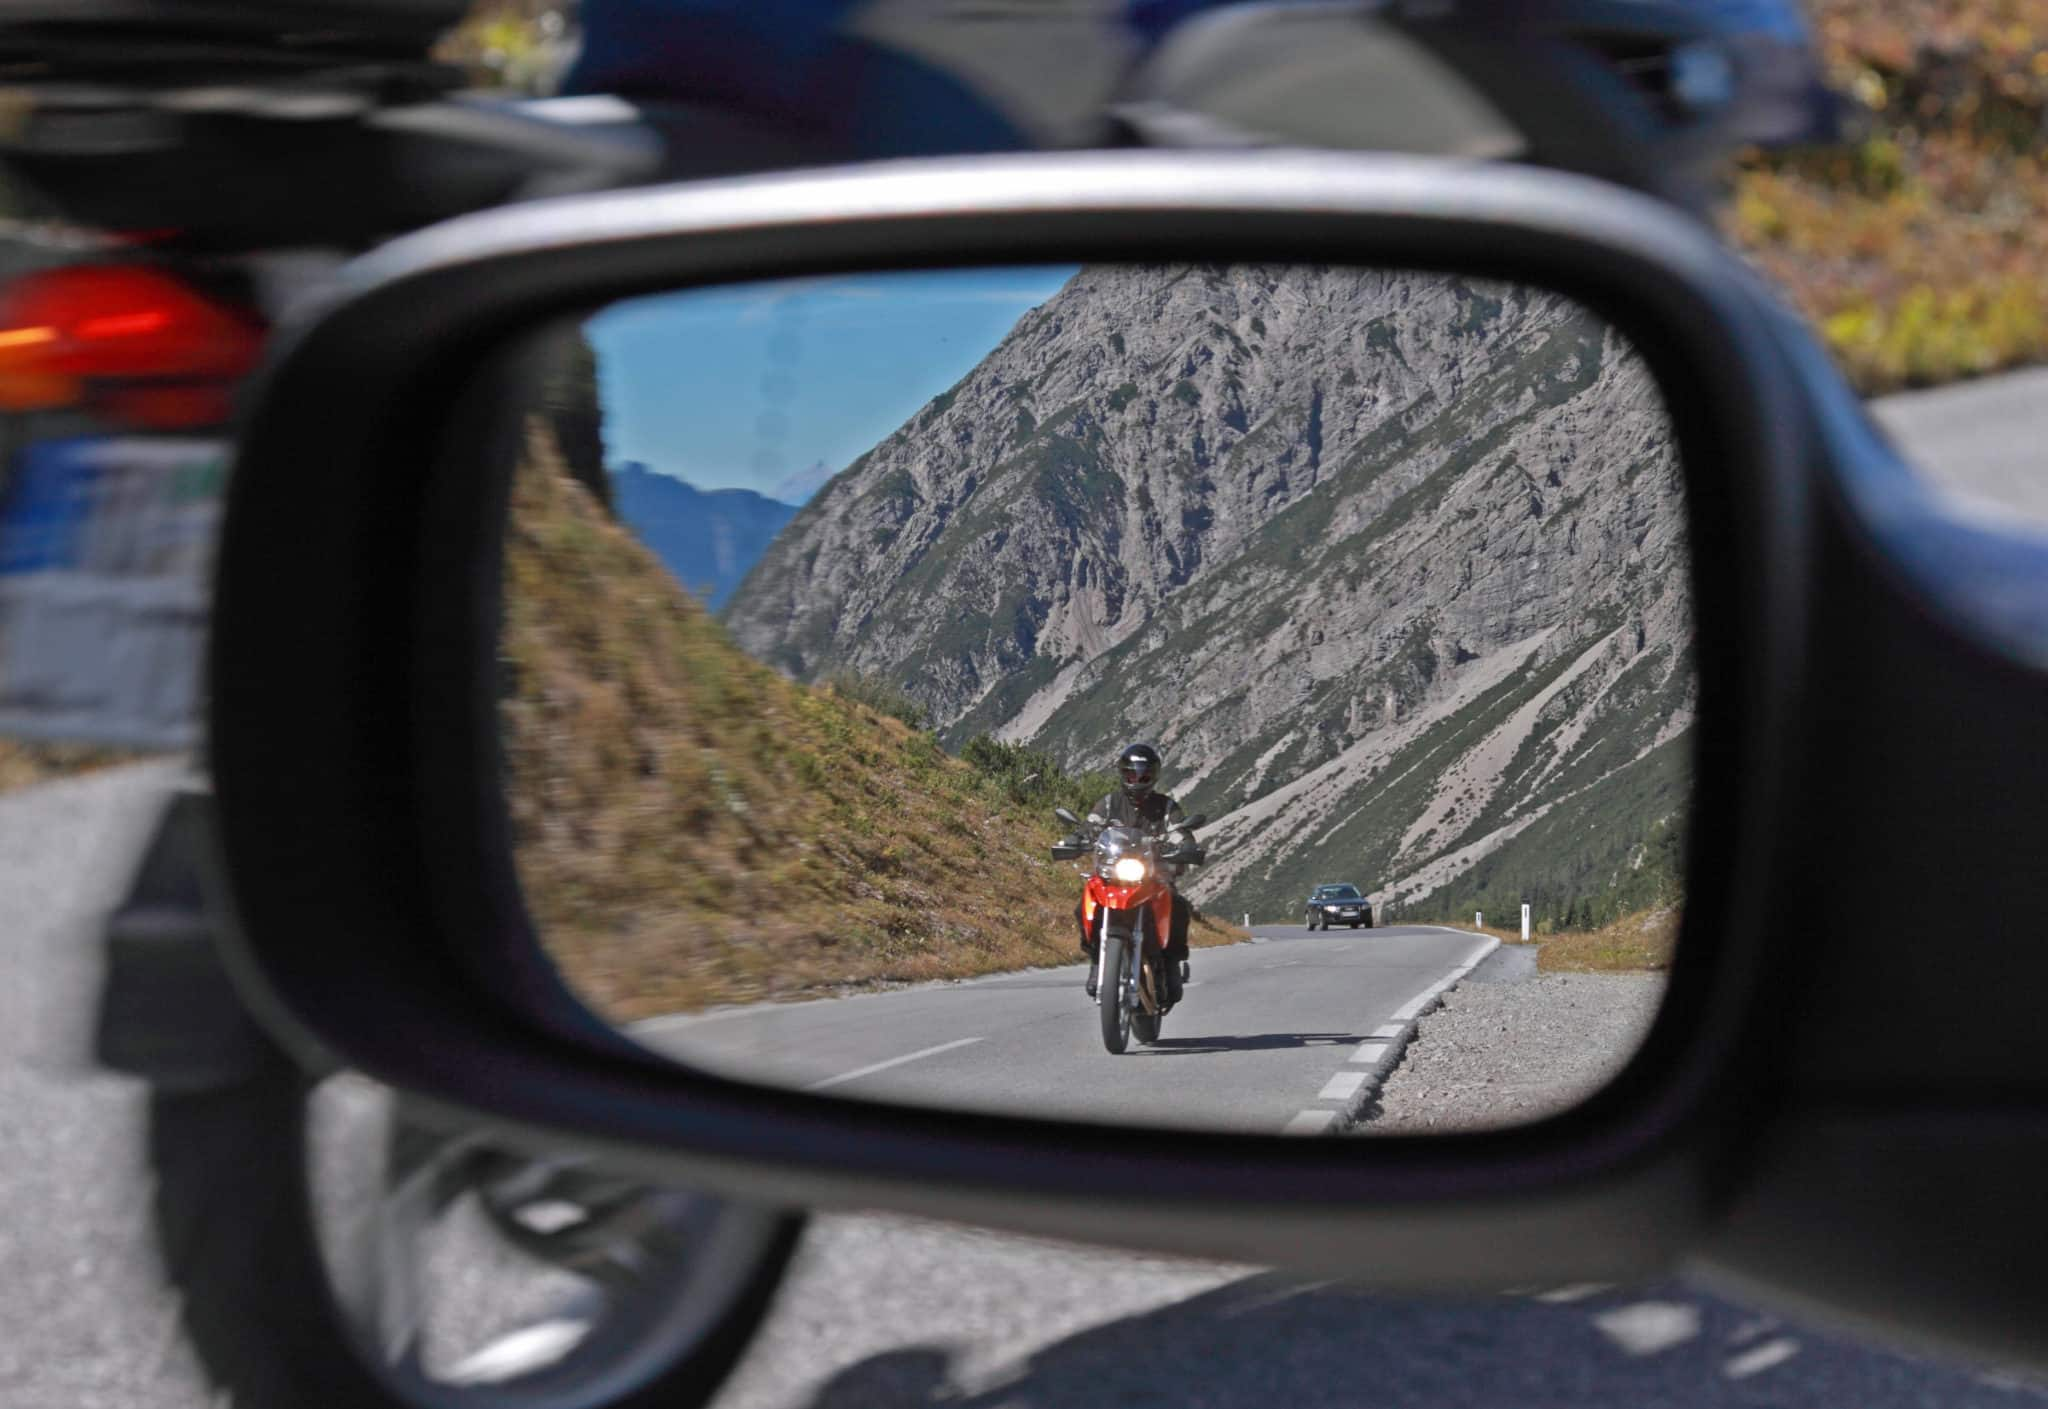 Motorcyclist in the rearview Mirror